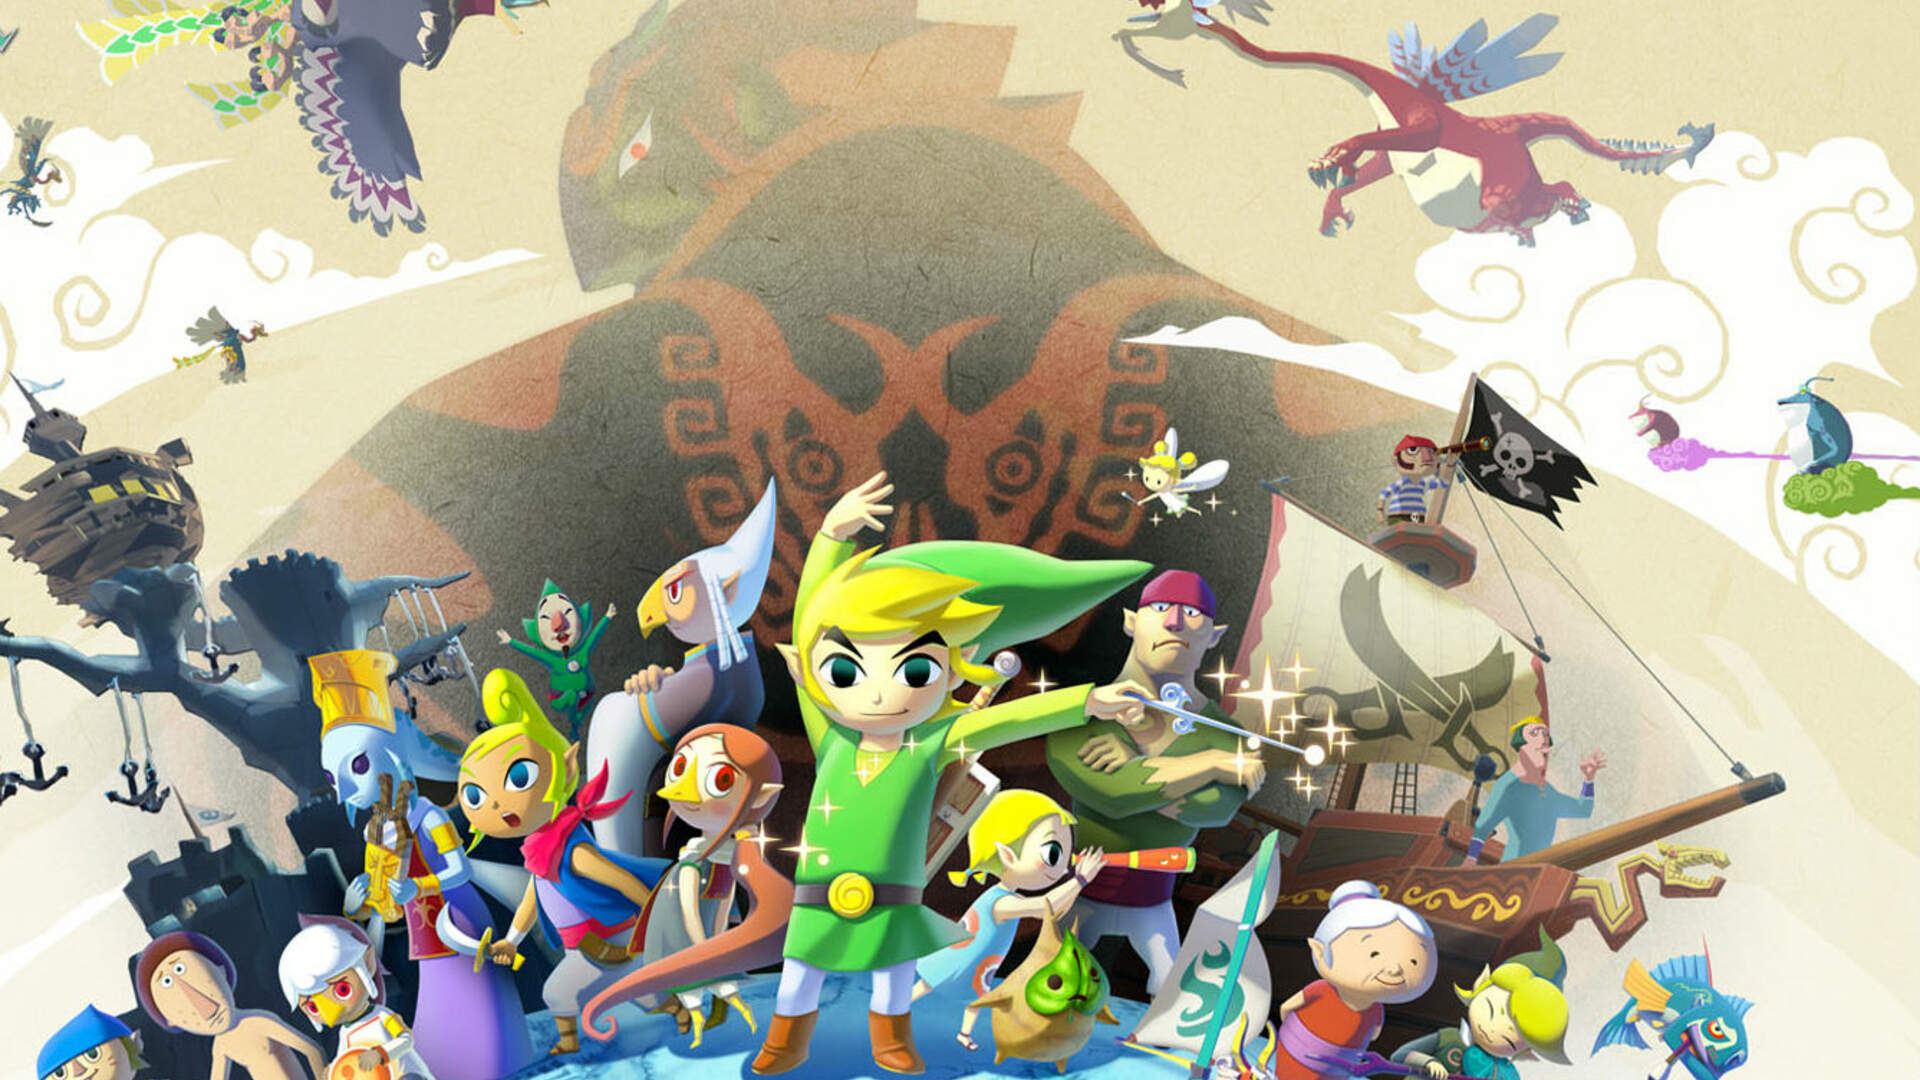 Link Actually Sails on the Great Ocean in this Moving Wind Waker Model